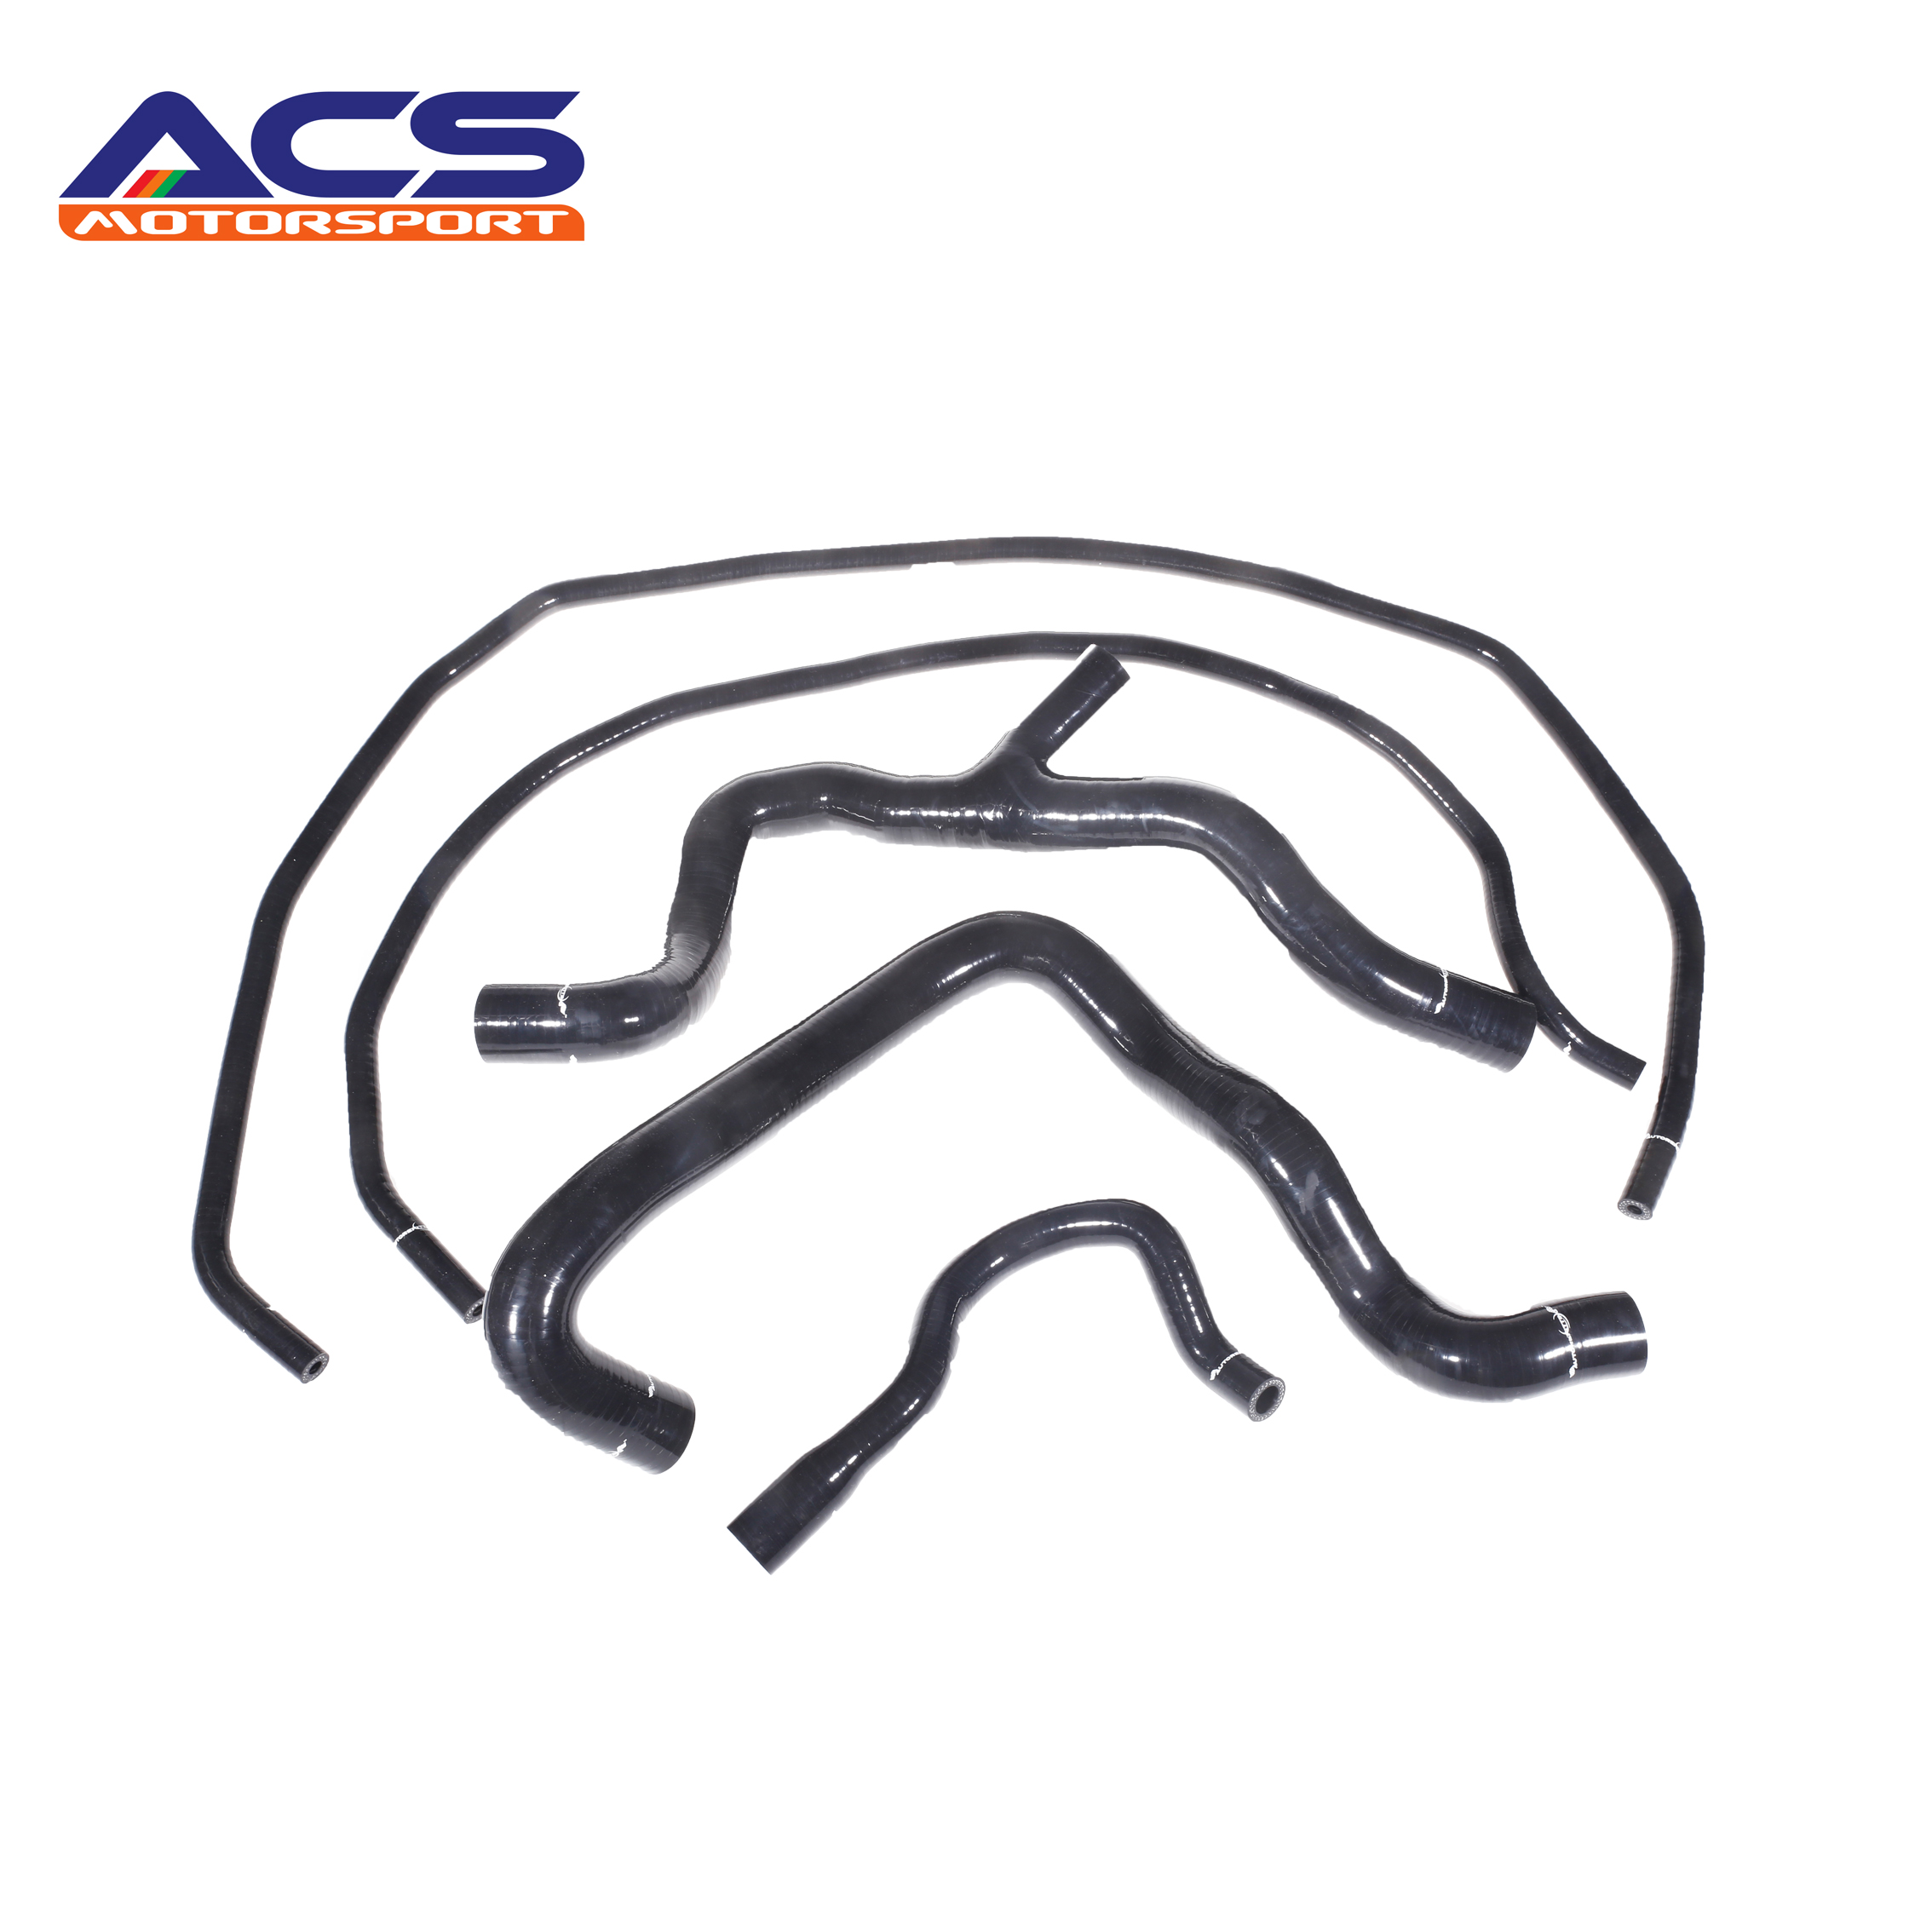 Universal Black Silicone Coolant Hose Kit For Ford ST 225 f7dz10884aa f8cz12a648b fit for ford thermostat housing water outlet coolant hose